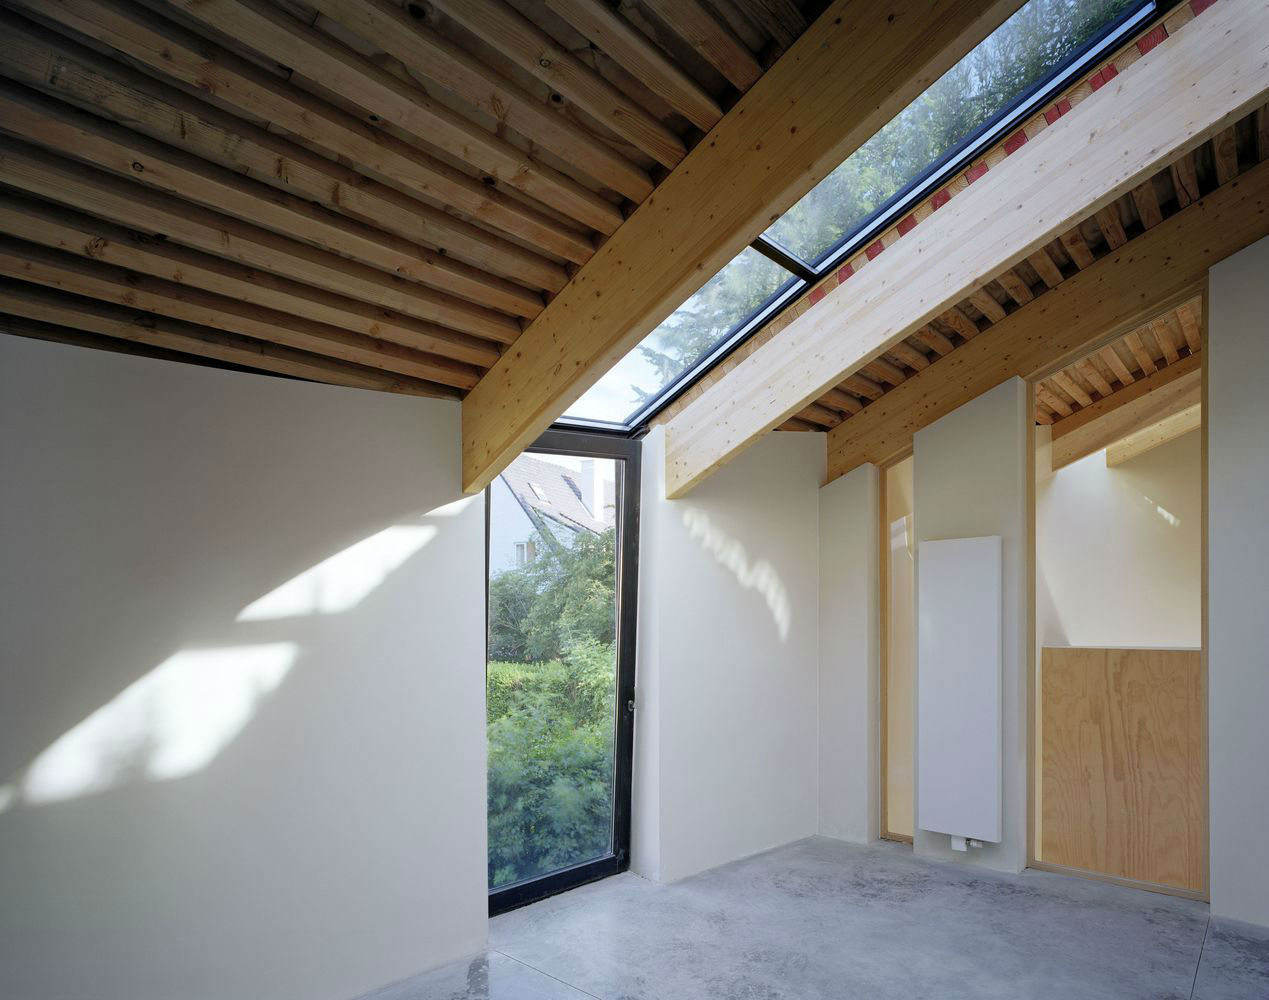 ARCH2O-House-in-the-Outskirts-of-Brussels-SAMYN-and-PARTNERS-20.jpg